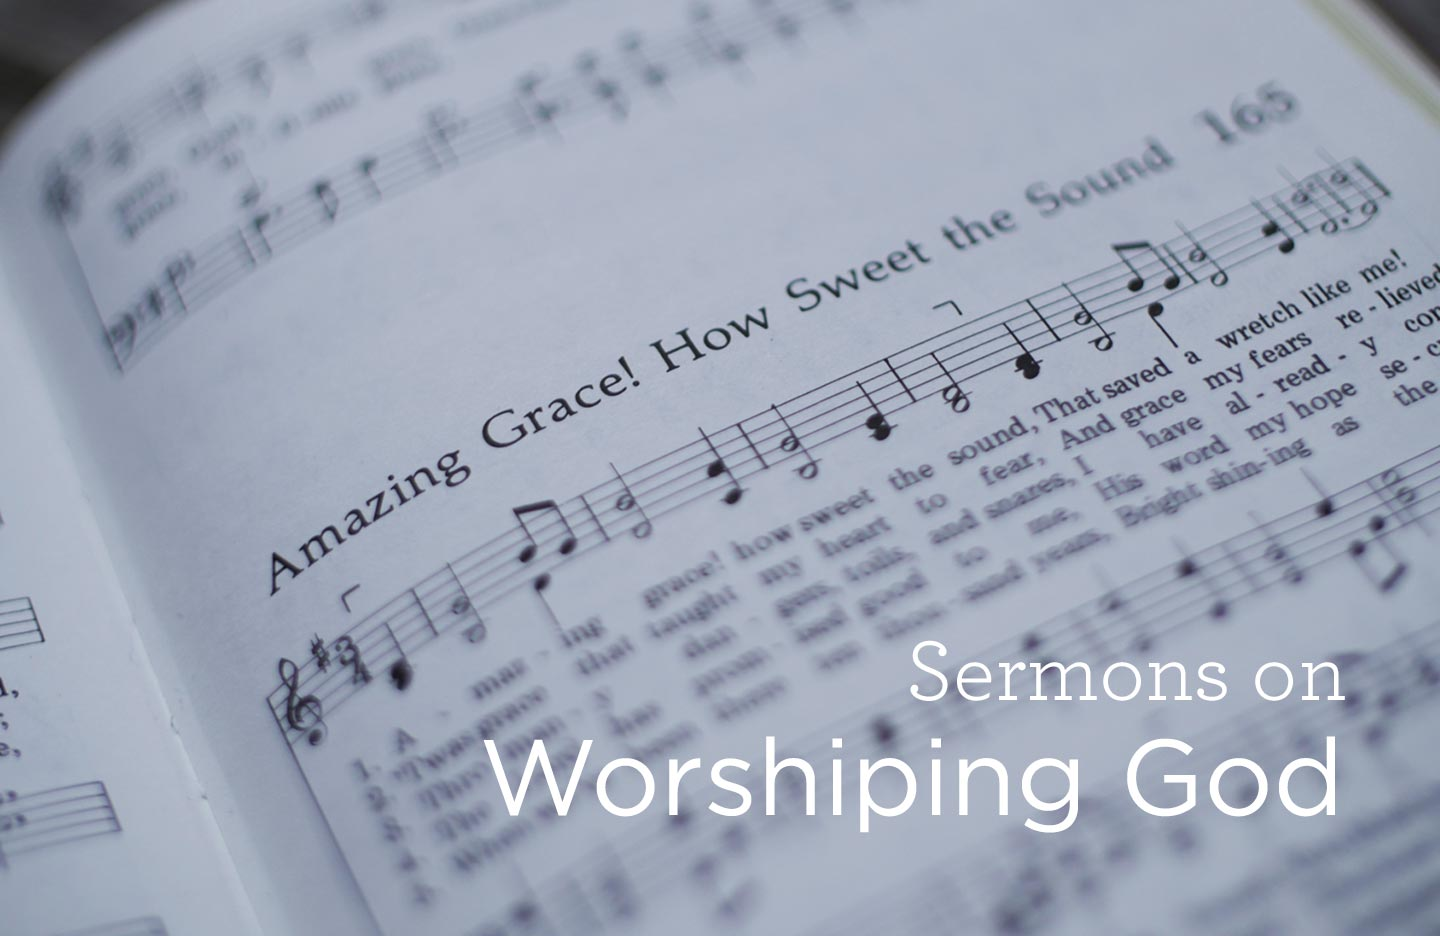 Sermon-on-Worshiping-God2